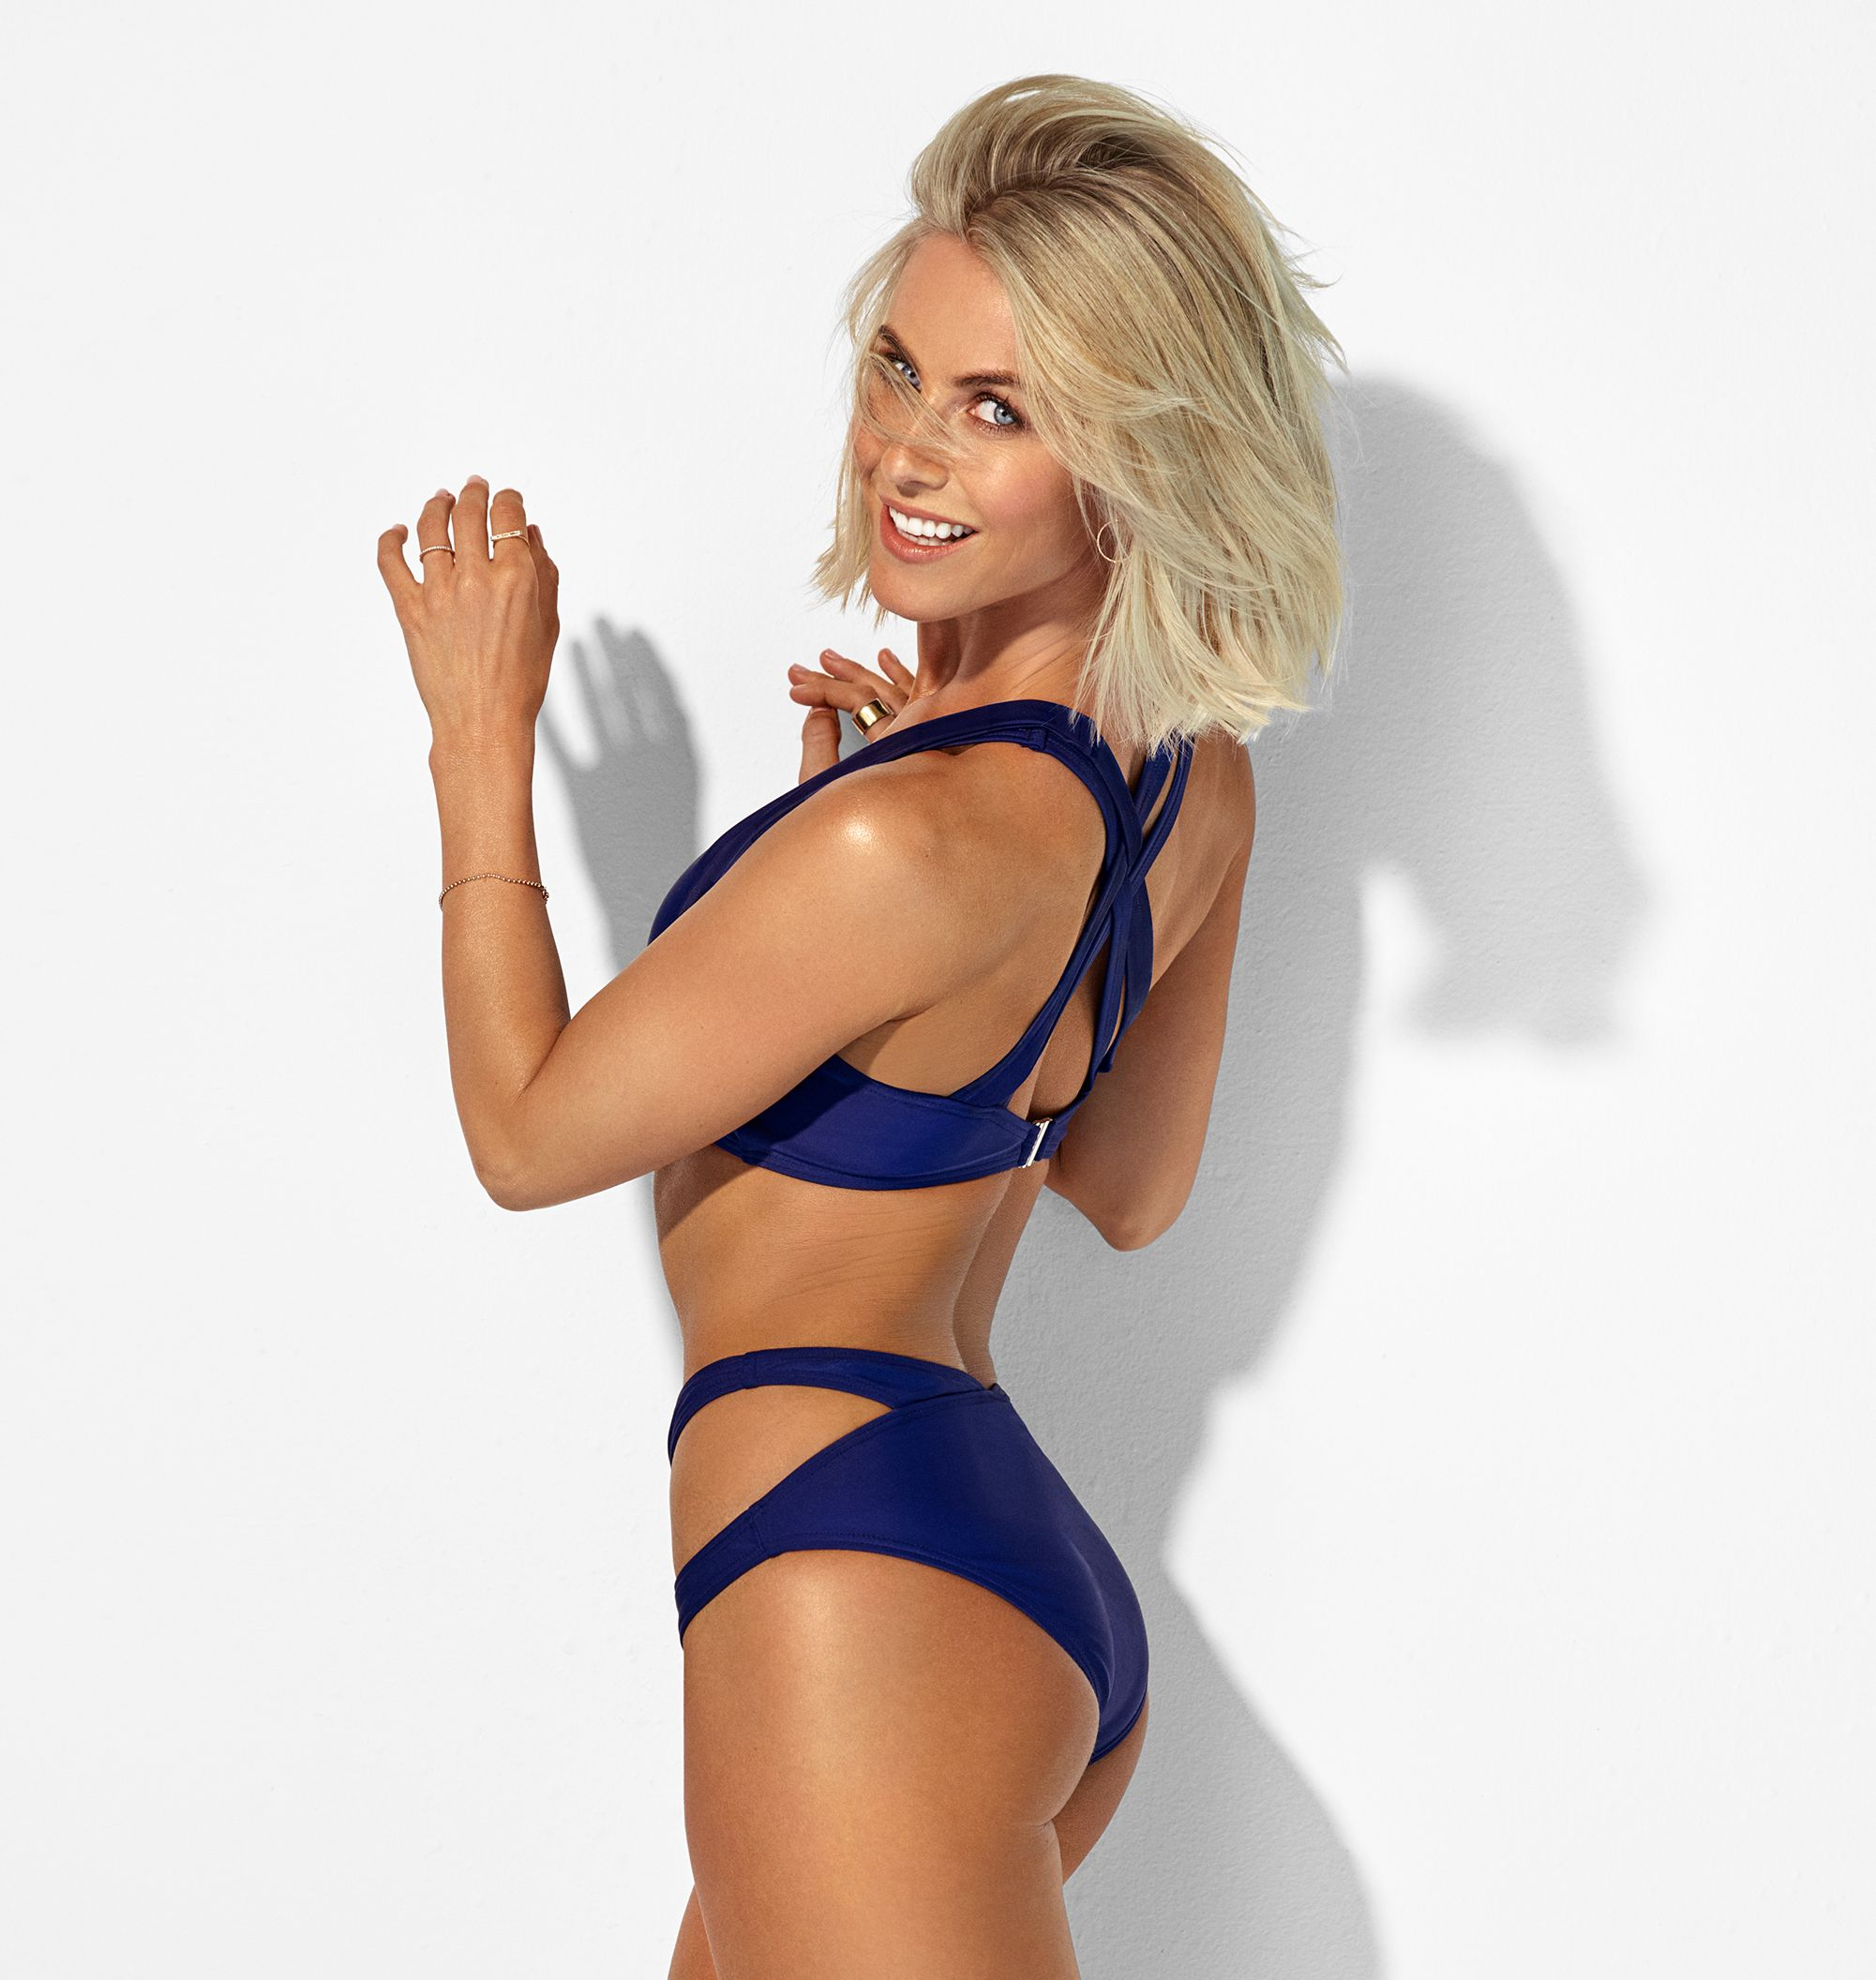 Julianne Hough in Women's Health Magazine - June 2020